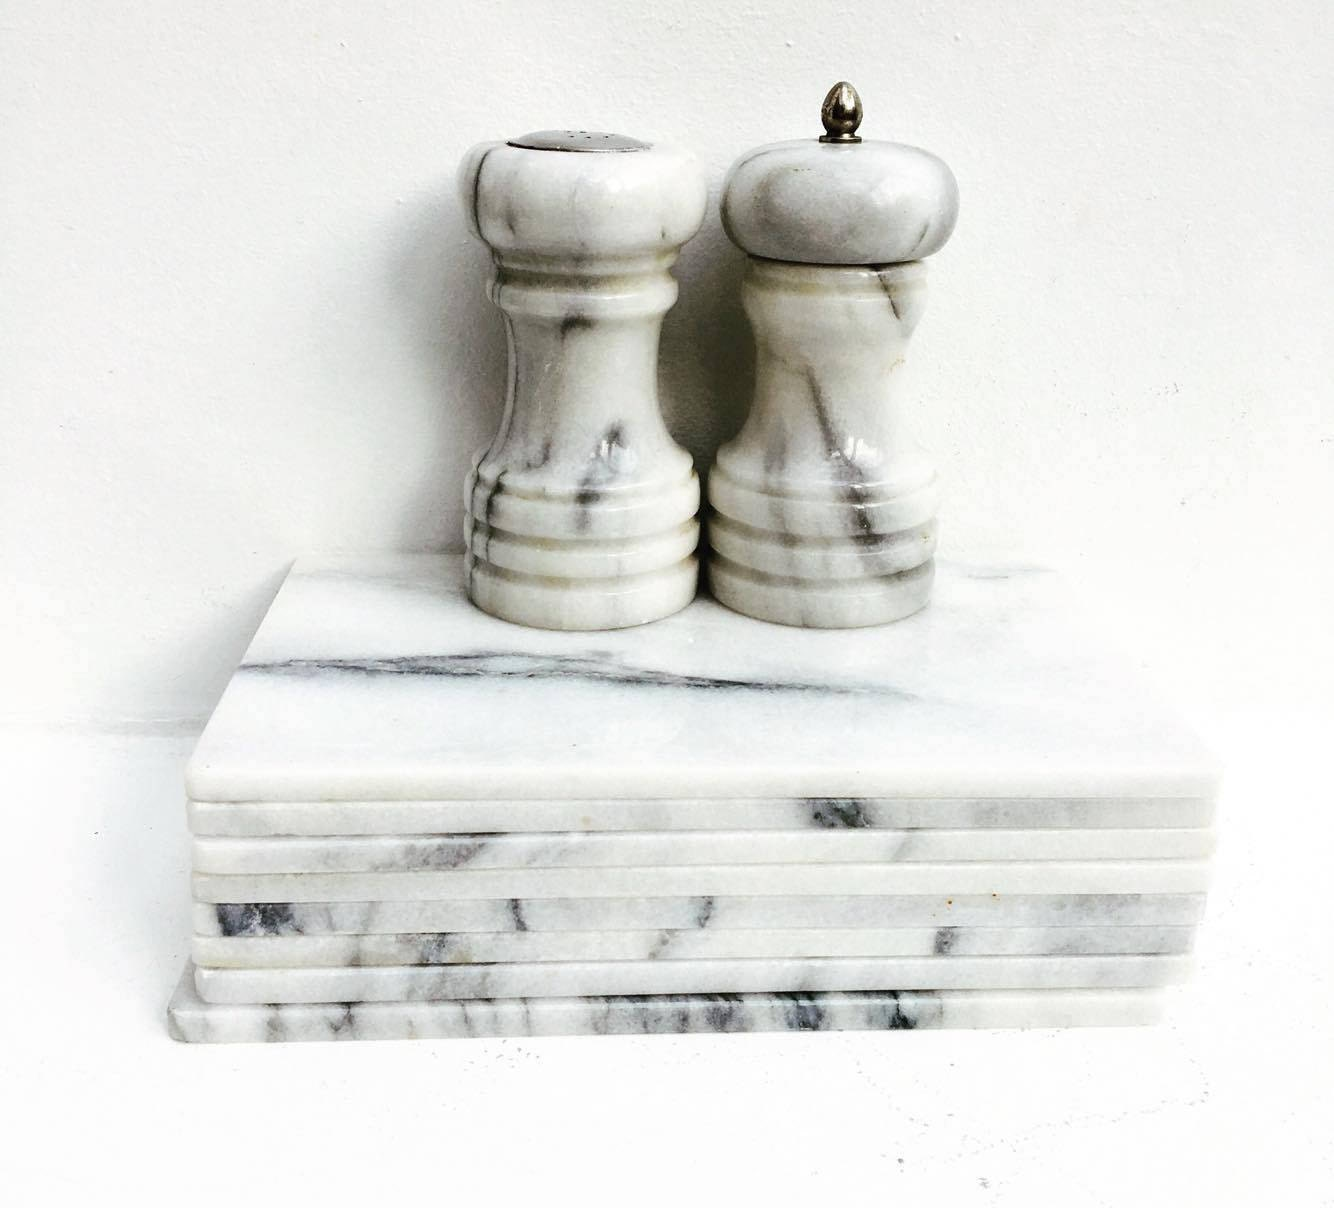 Marble Cutting Boards Cheese Boards Set Plate Serving Platter Display Marble Stone Pastry Board Vintage Cutting Board Germany 1960s